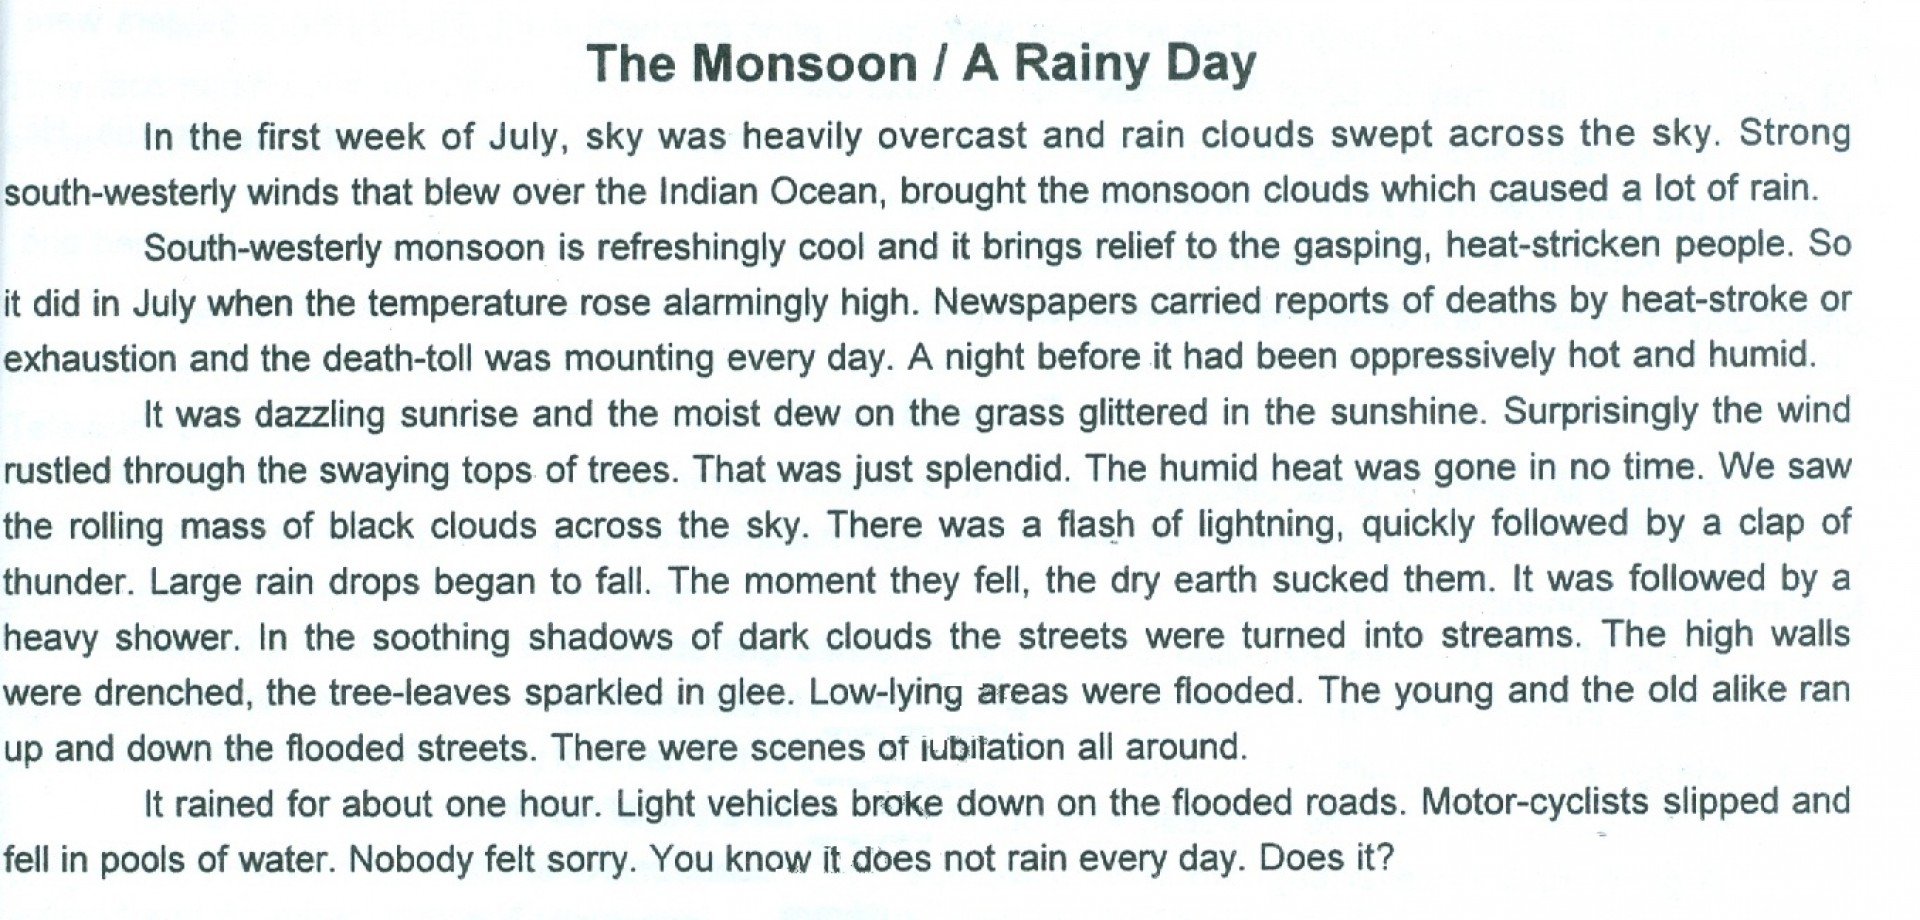 005 Rainy Day Essay English The2bmoonsoon Stupendous My In For Class 6 10 1920